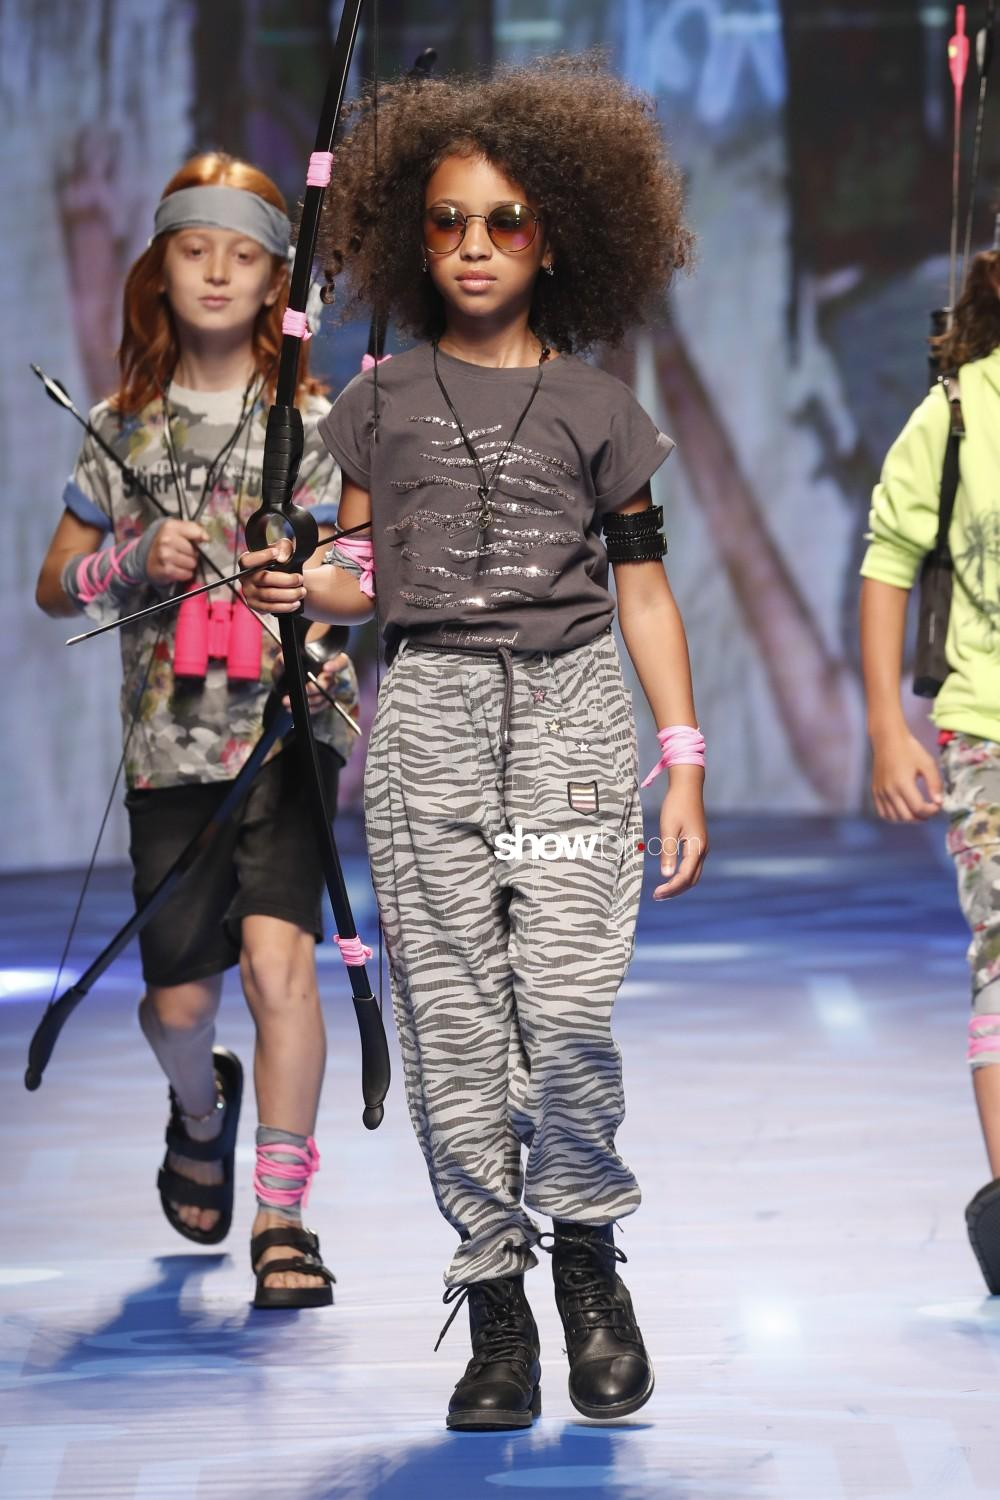 Boboli full lengths Kids Spring Summer 2020 Firenze Pitti Bimbo